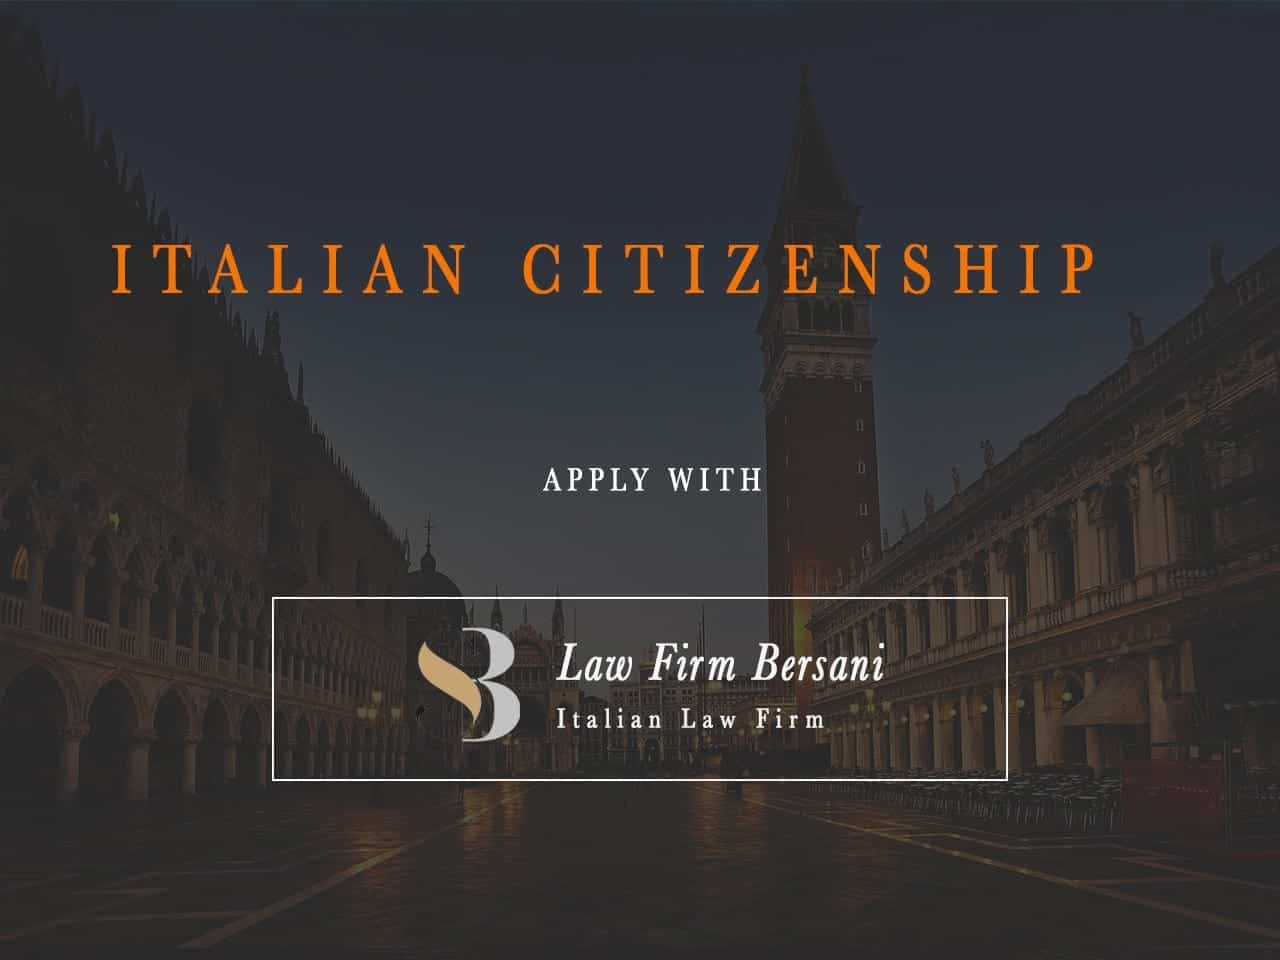 https://www.mbersanilaw.com/wp-content/uploads/2020/01/ITALIAN-CITIZENSHIP-ITALY-DUAL-CITIZENSHIP-APPLICATION-APPLY-ITALIAN-DUAL-CITIZENSHIP.jpg